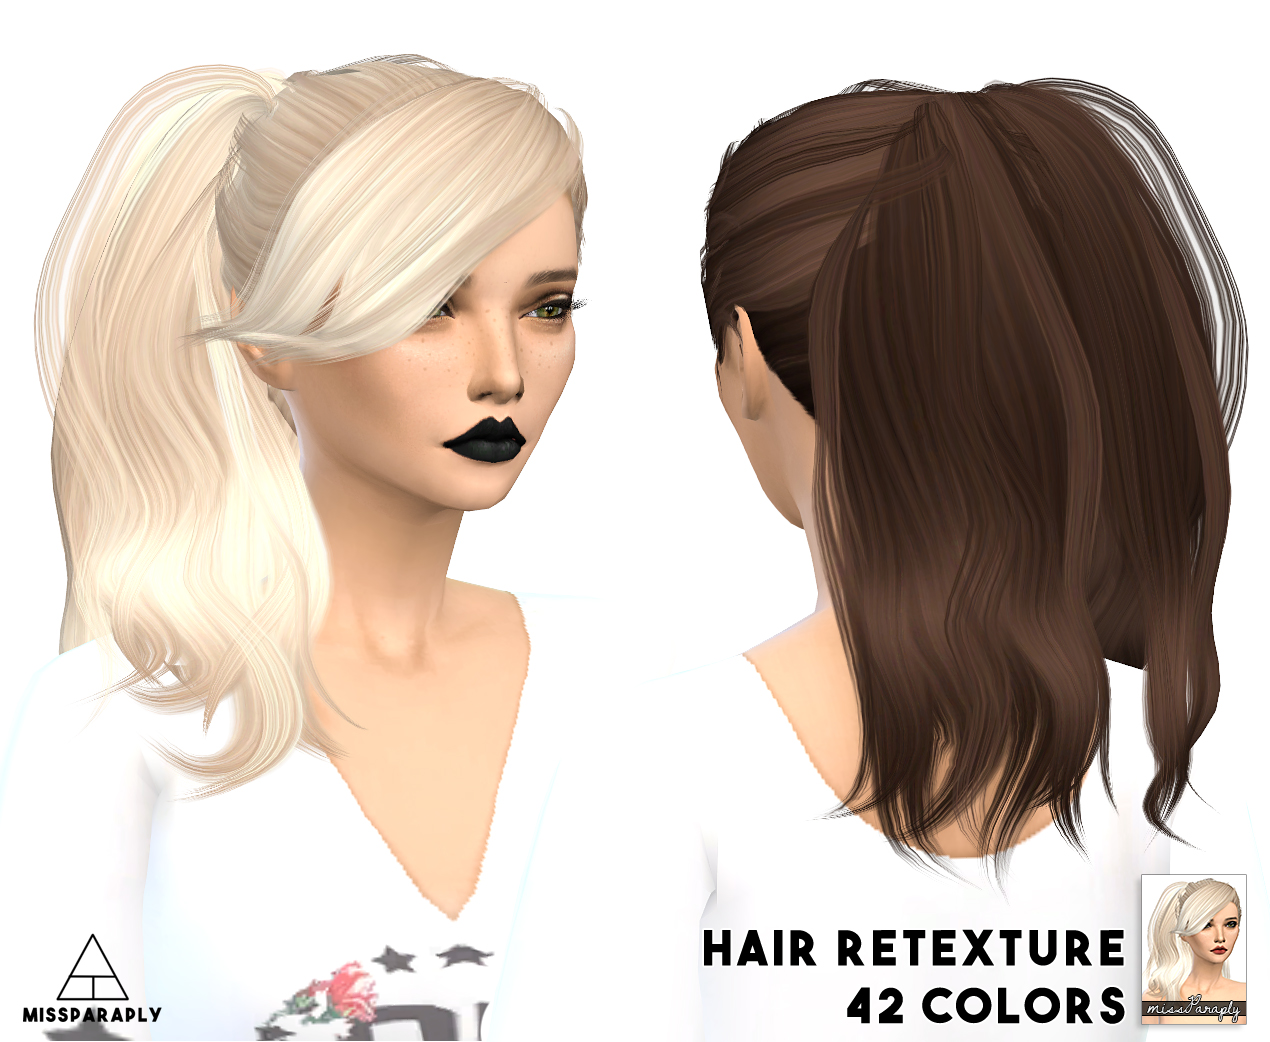 Sims 4 Hairs ~ Miss Paraply: Stealthic hairstyles dump: part 1